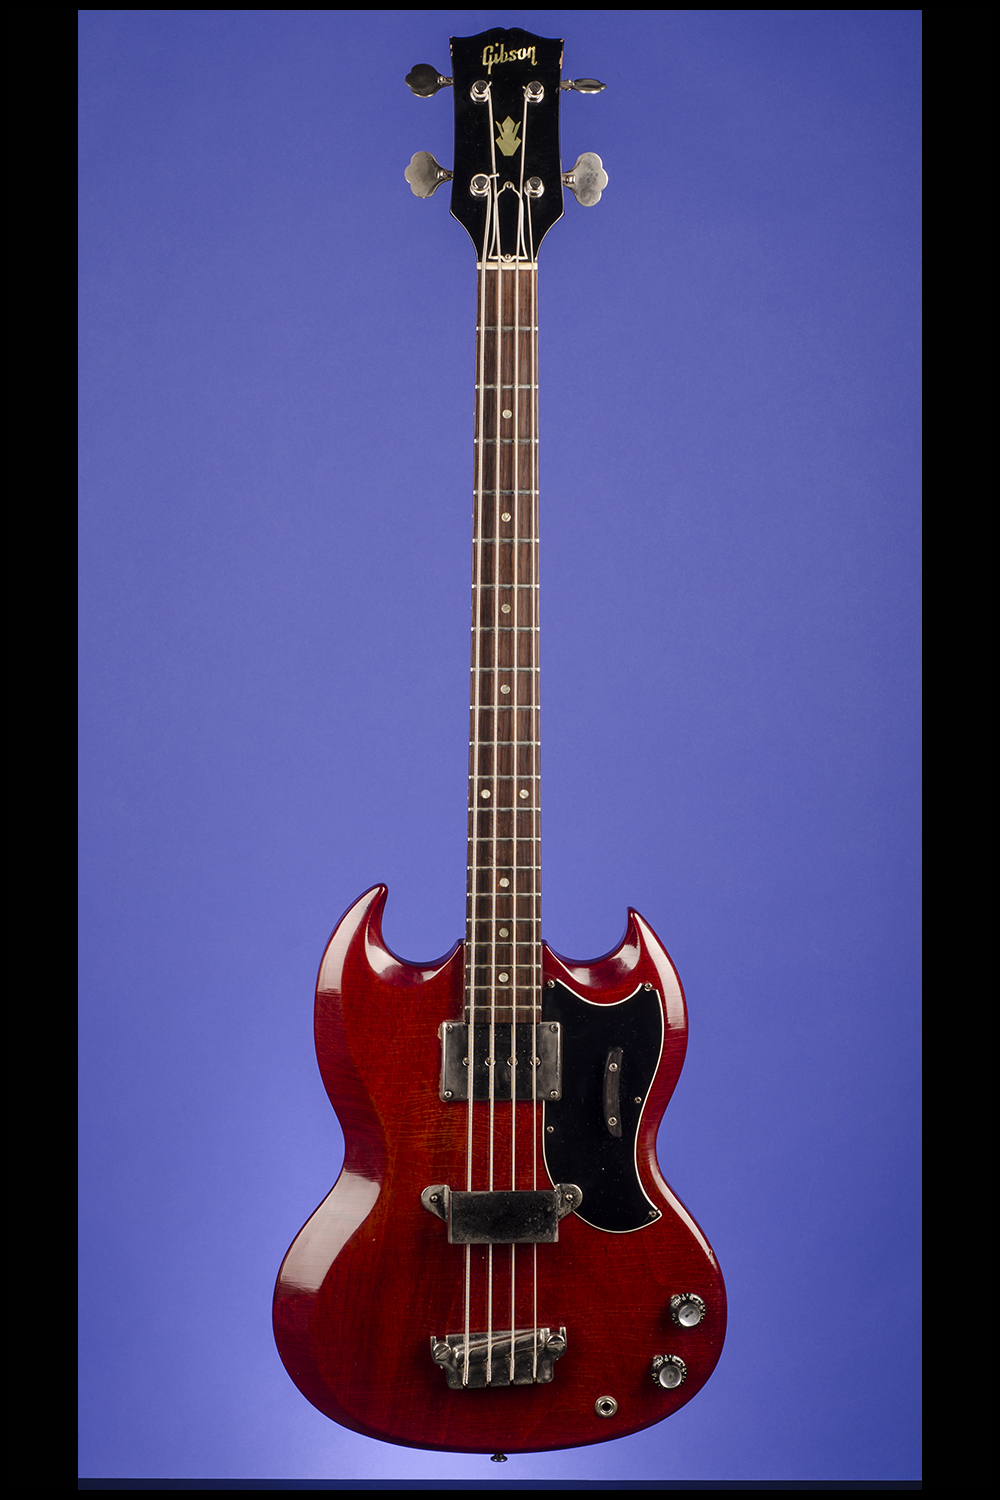 Gibson Bass Guitars : eb 0 bass guitars fretted americana inc ~ Hamham.info Haus und Dekorationen